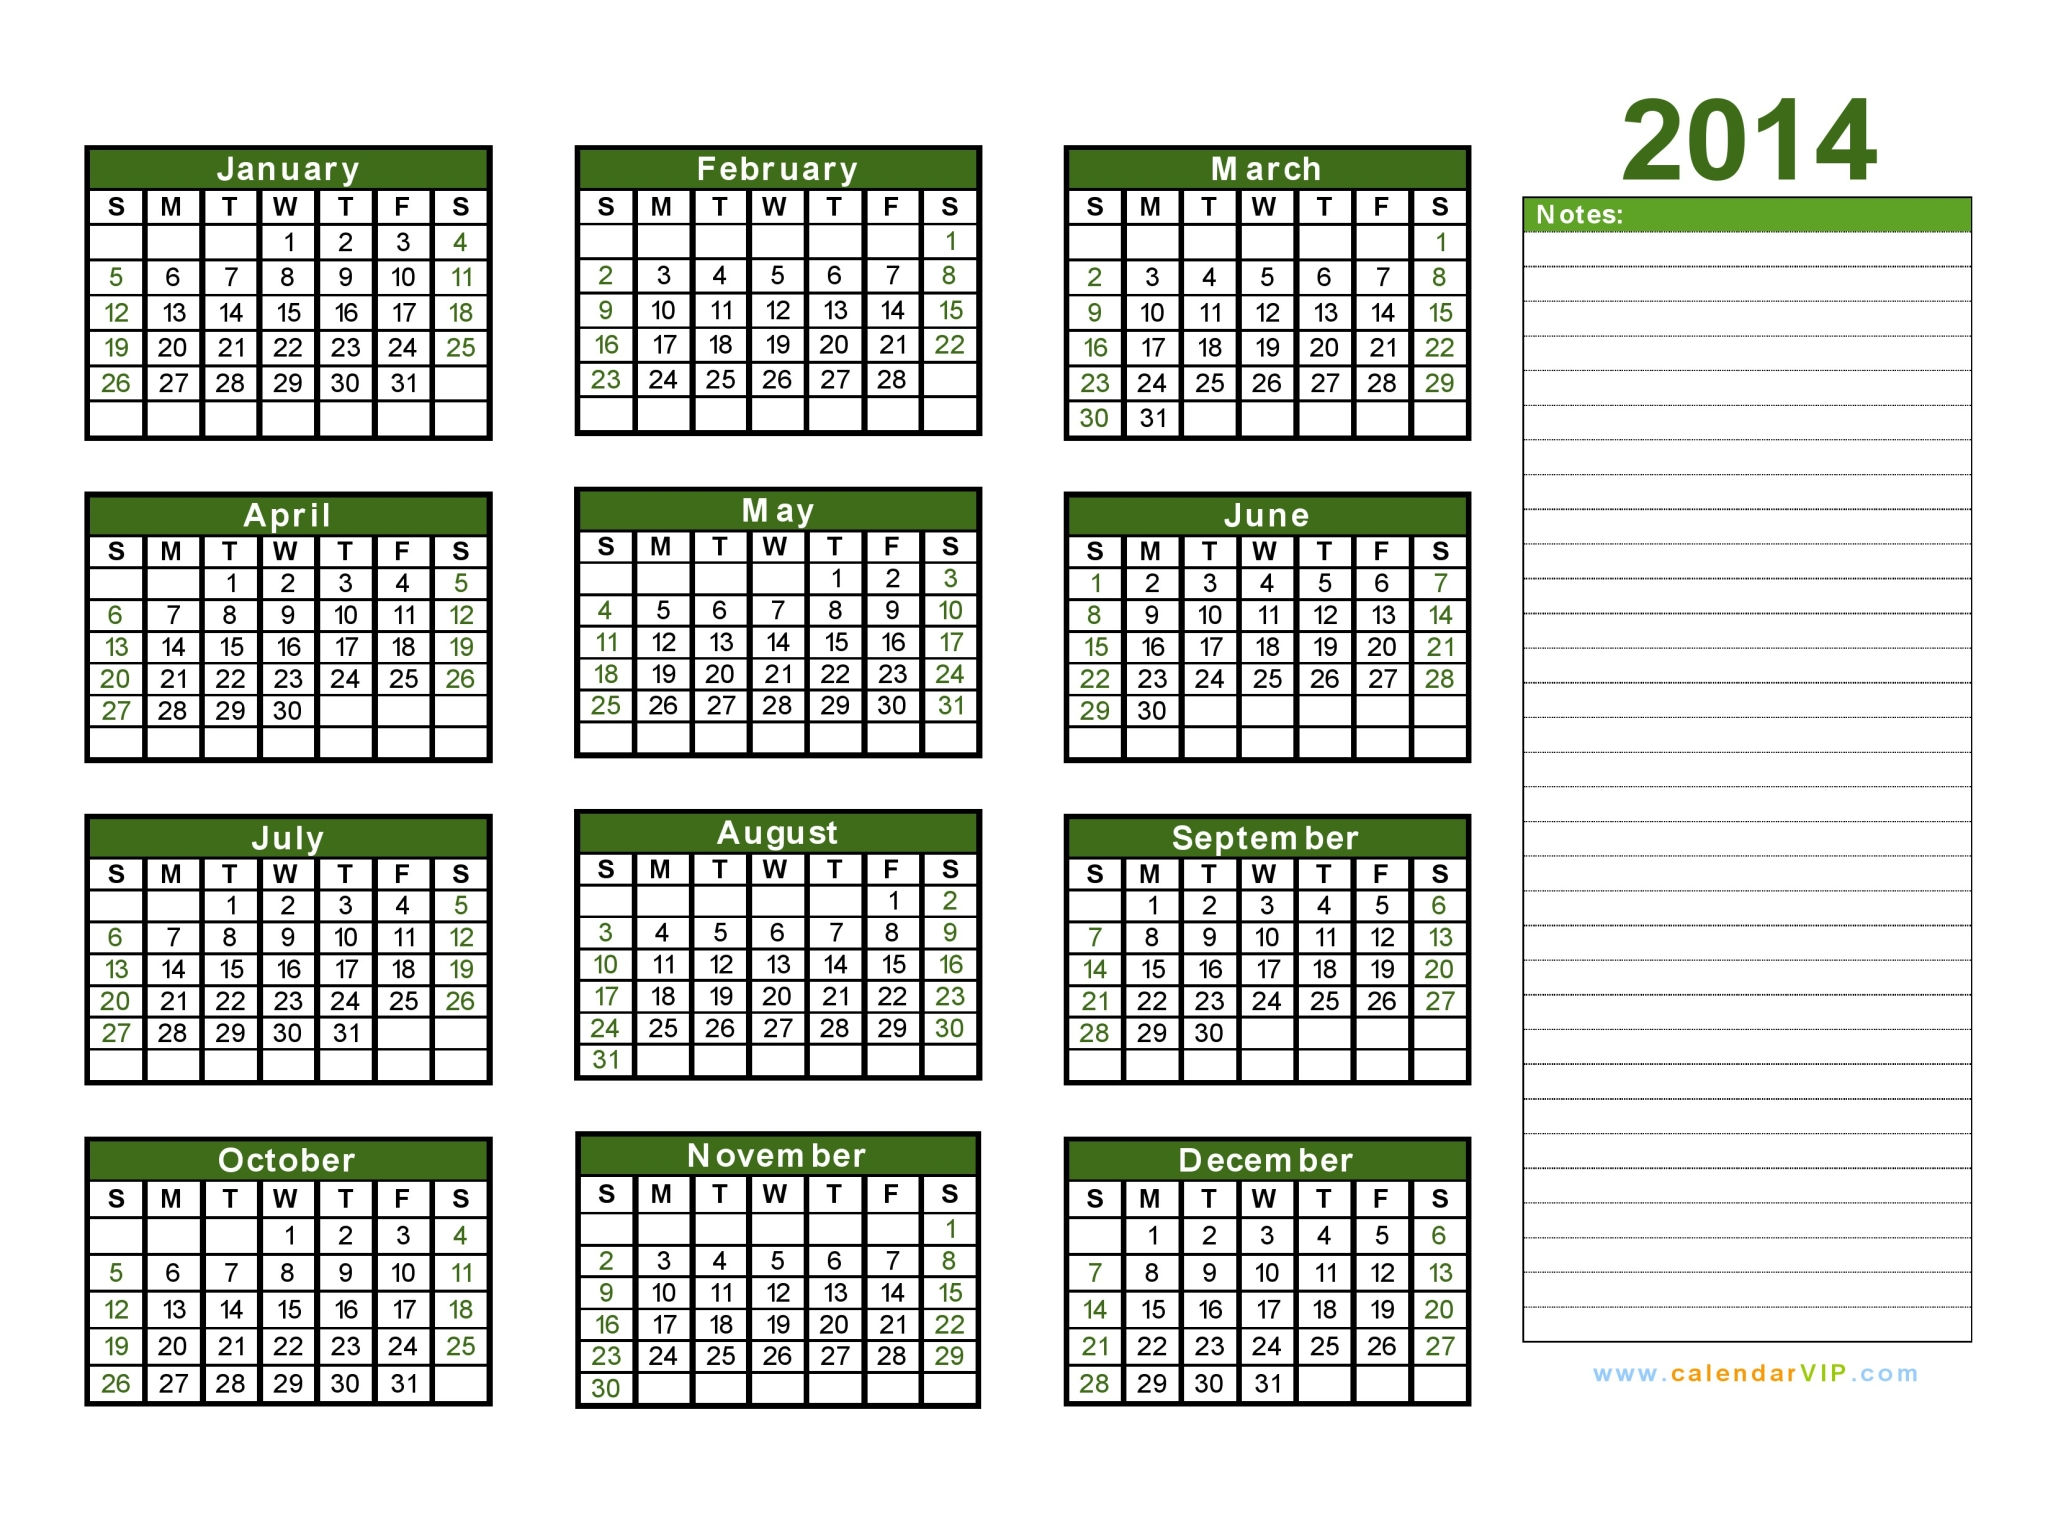 Comfortable 1.25 Button Template Tiny 10 Best Resume Writers Shaped 1st Birthday Card Template 2 Page Resume Examples Old 2013 Resume Format Examples Green2014 Printable Calendar Template 2014 Calendar   Blank Printable Calendar Template In PDF Word Excel